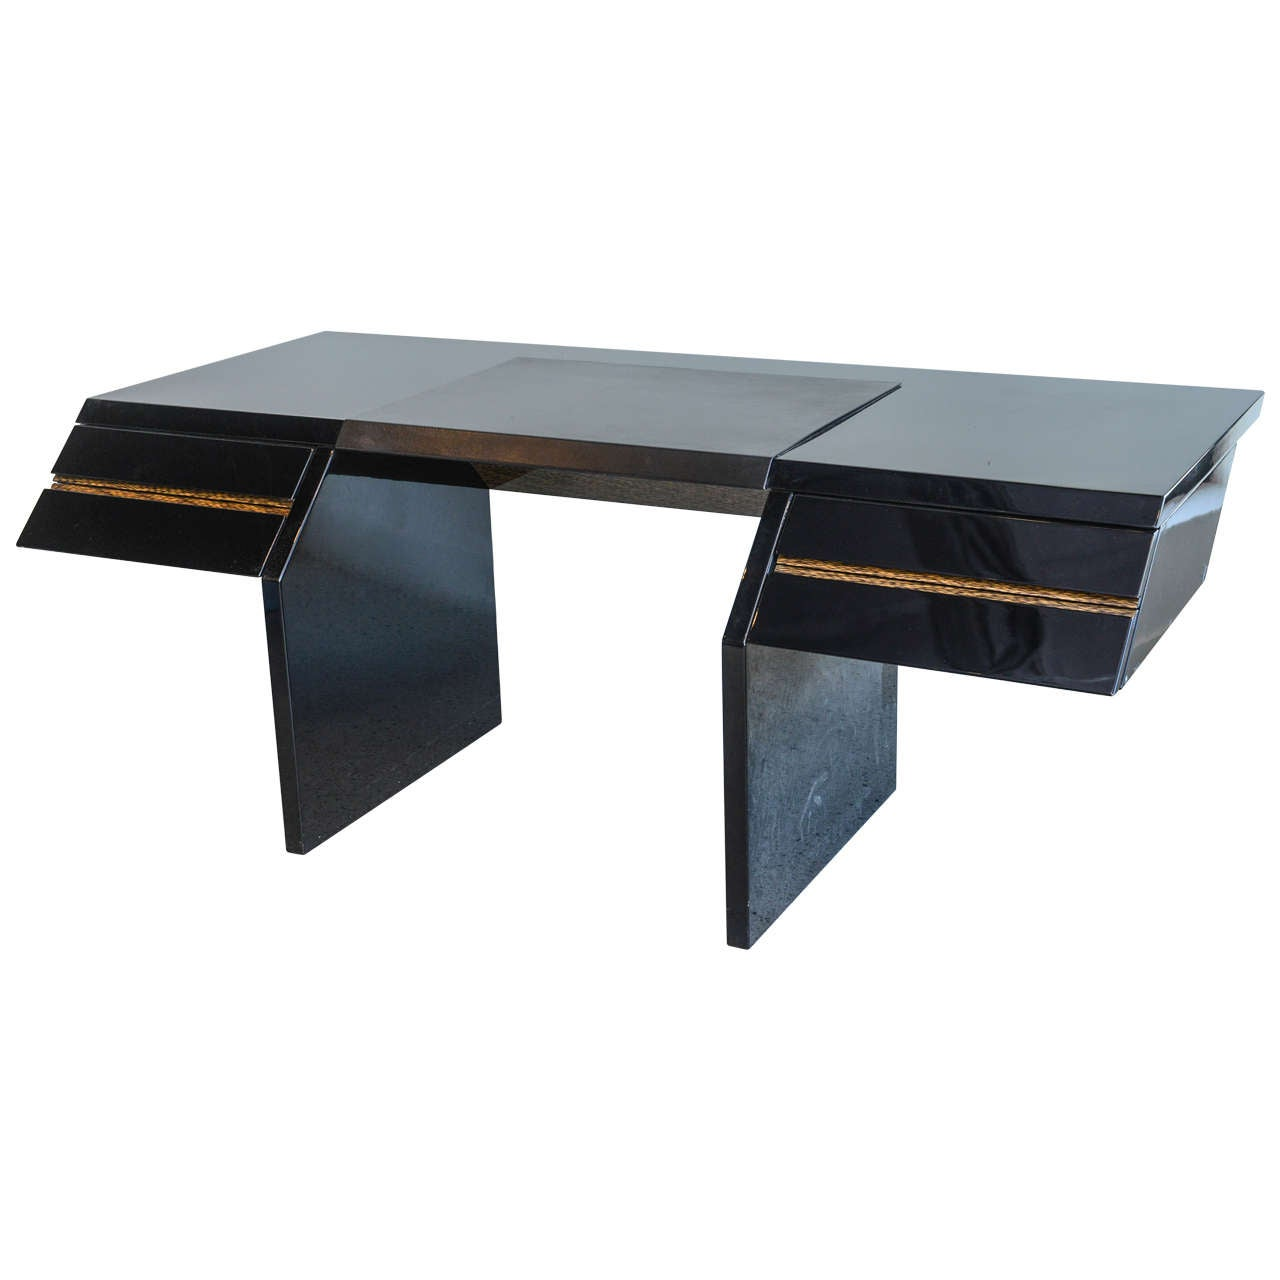 Italian Modern Black Lacquer And Zebrawood Desk Giovanni Offredi For Saporiti